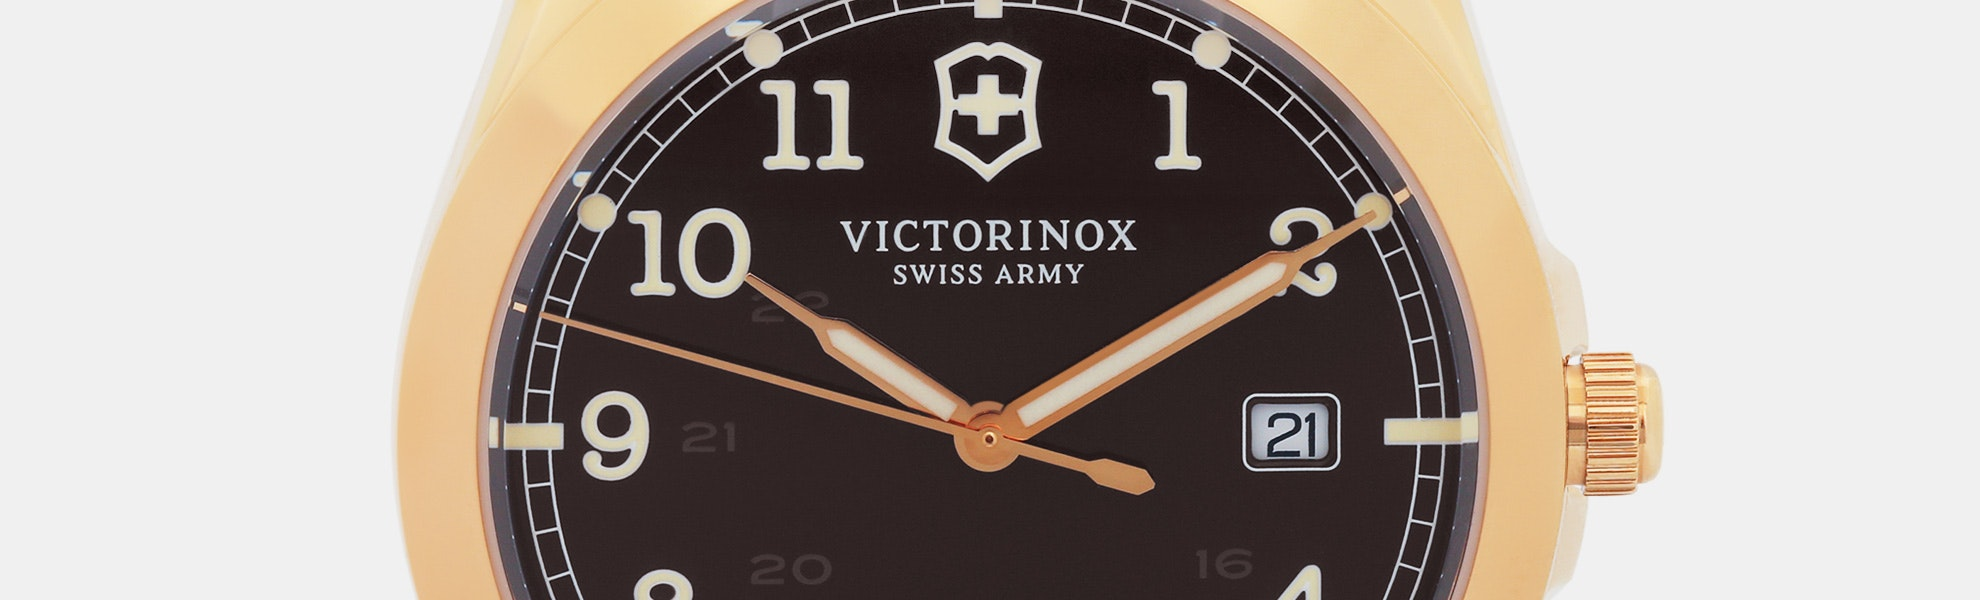 Victorinox Infantry Quartz Watch